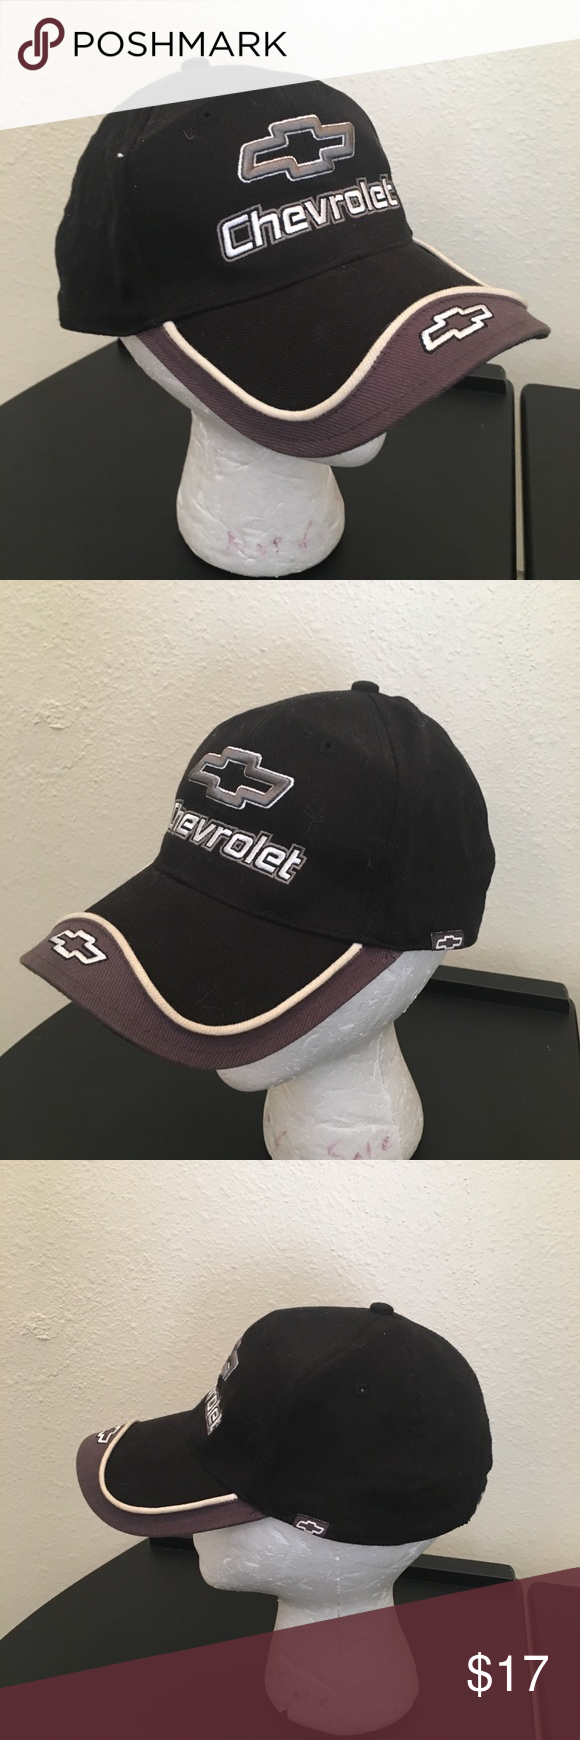 Vintage Chevrolet Trucker Hat by Hot Rods Plus Fashion